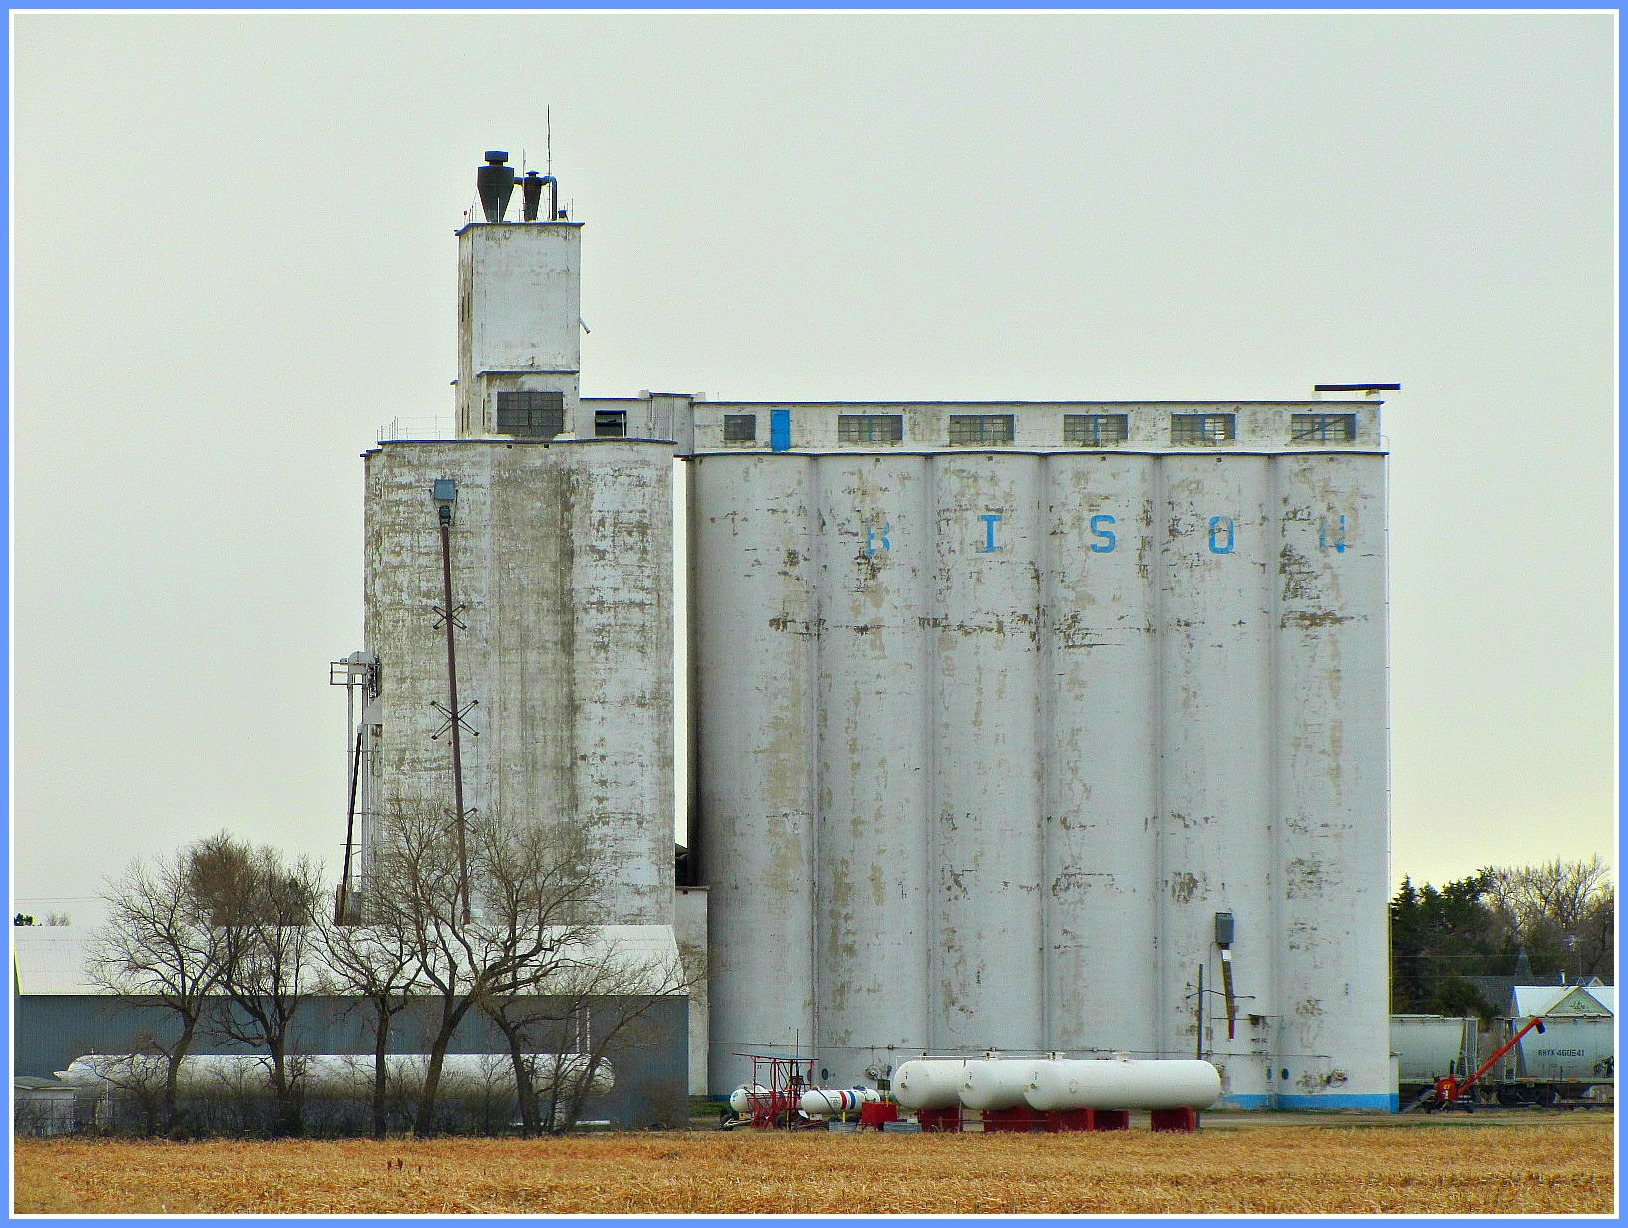 Kansas rush county otis - Concrete Kansas Agriculture Elevators Bison Smalltown Grainelevators